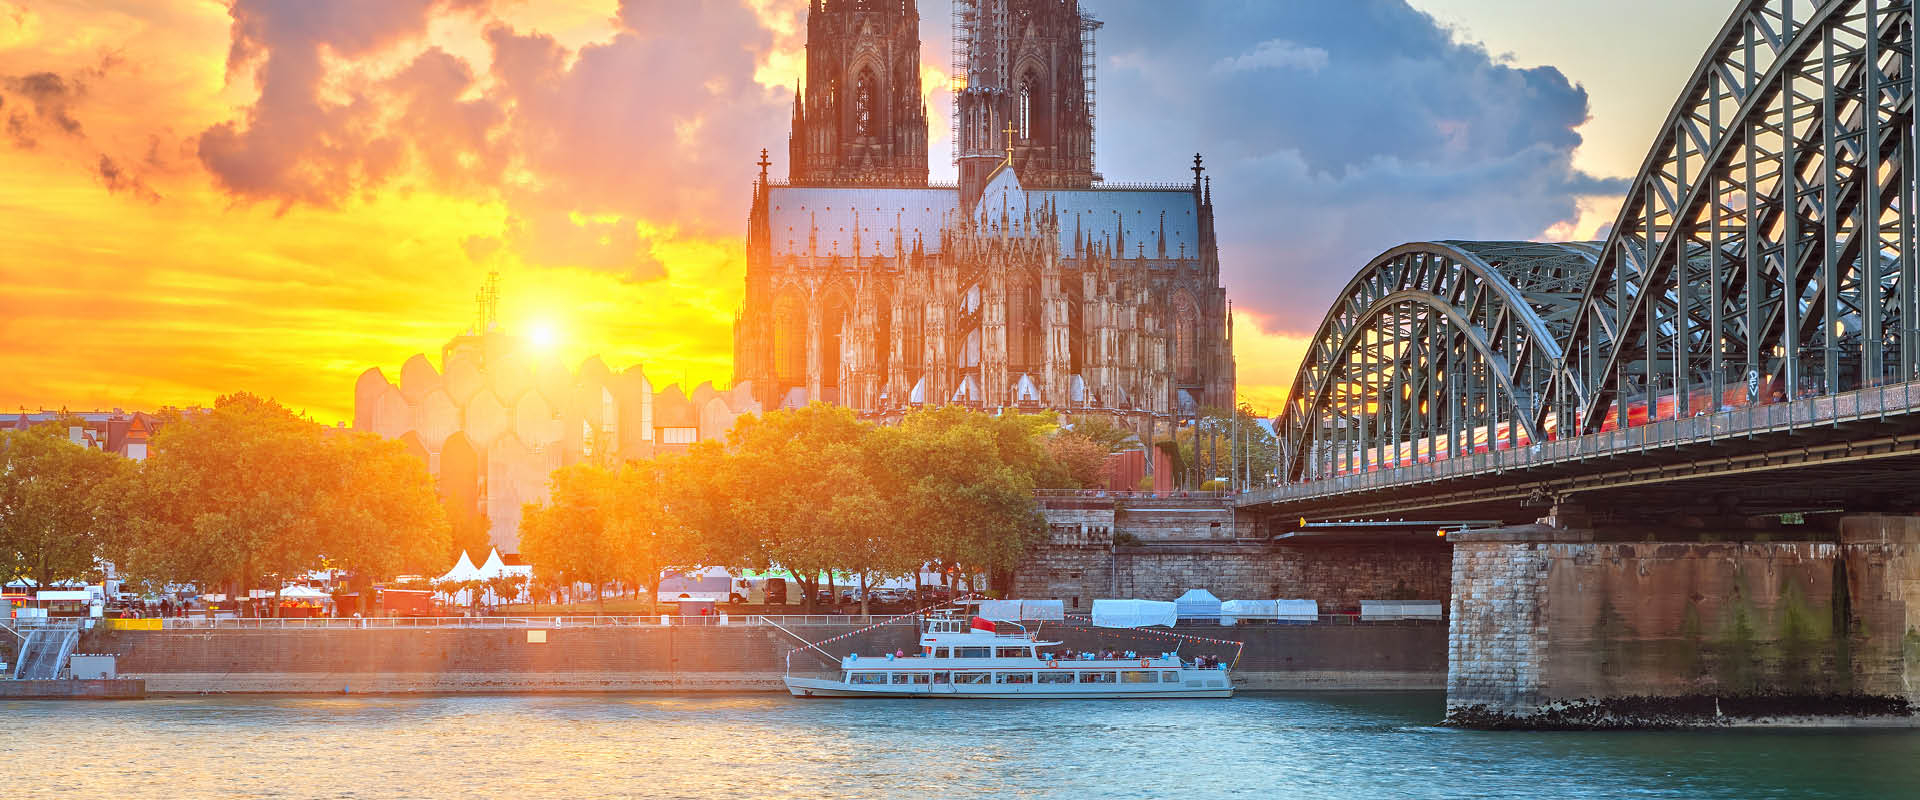 Best Travel River Cruise Package For Christmas Markets